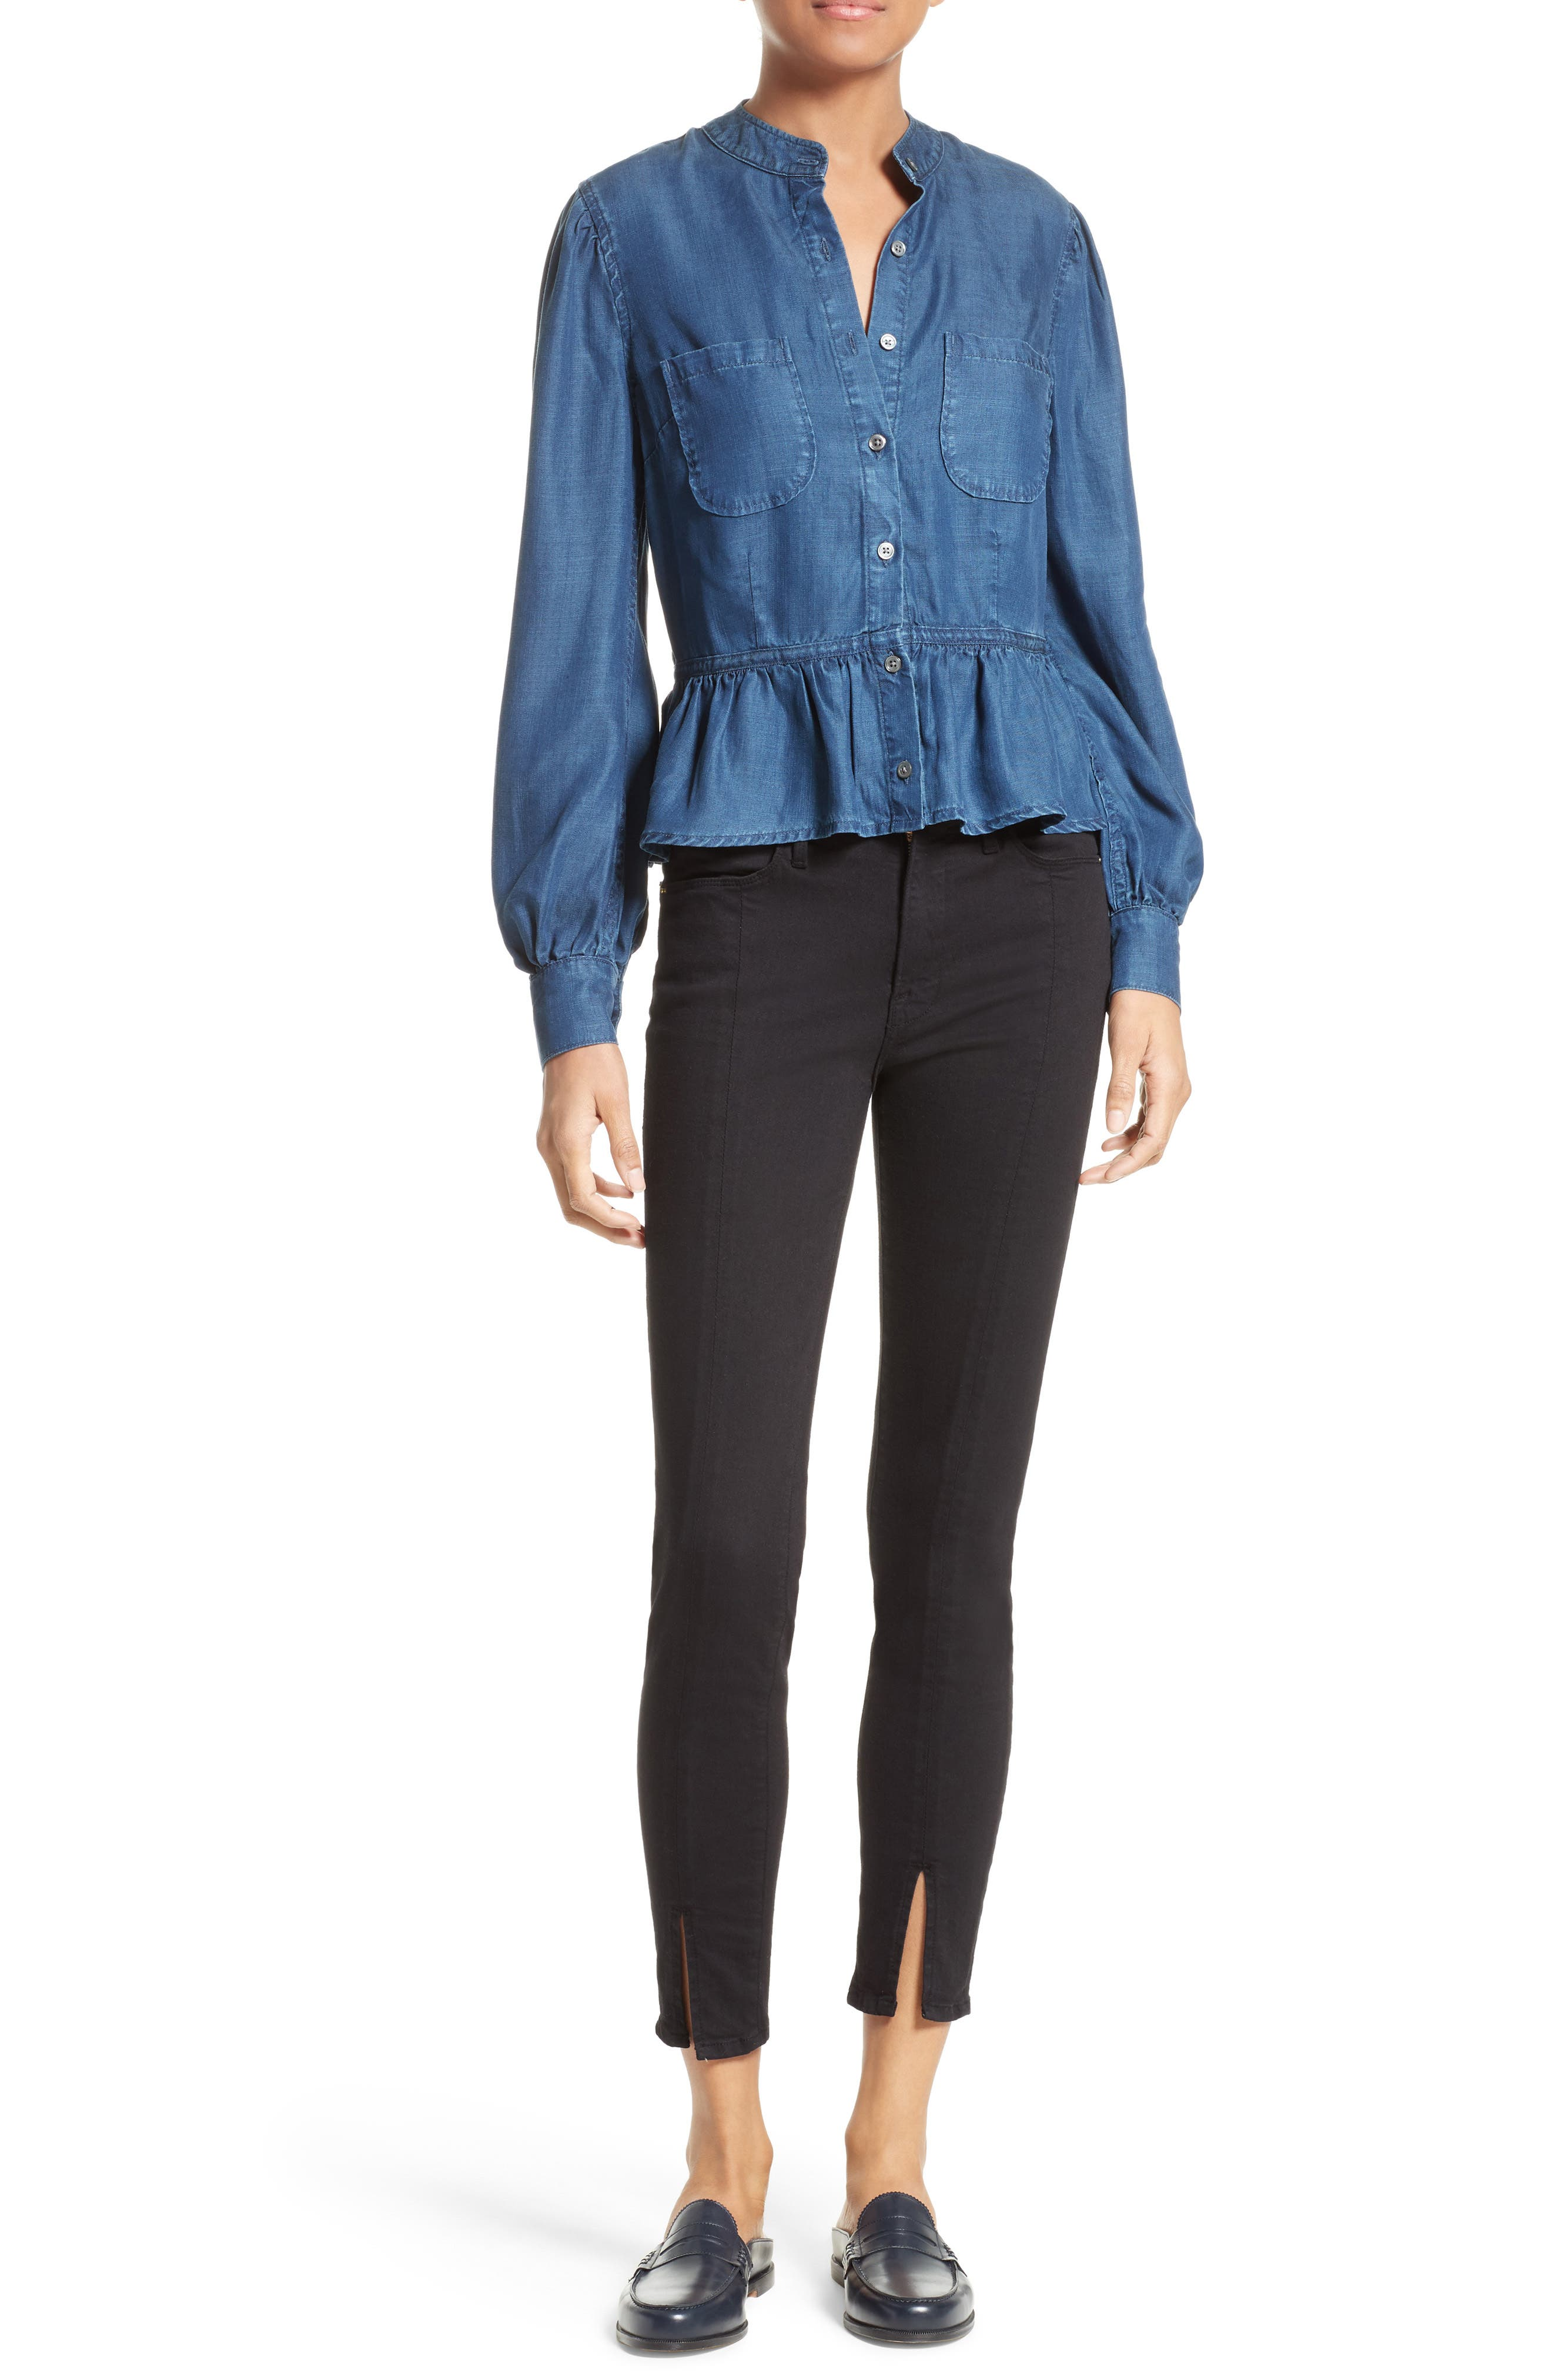 Alternate Image 2  - FRAME Chambray Peplum Top (Nordstrom Exclusive)